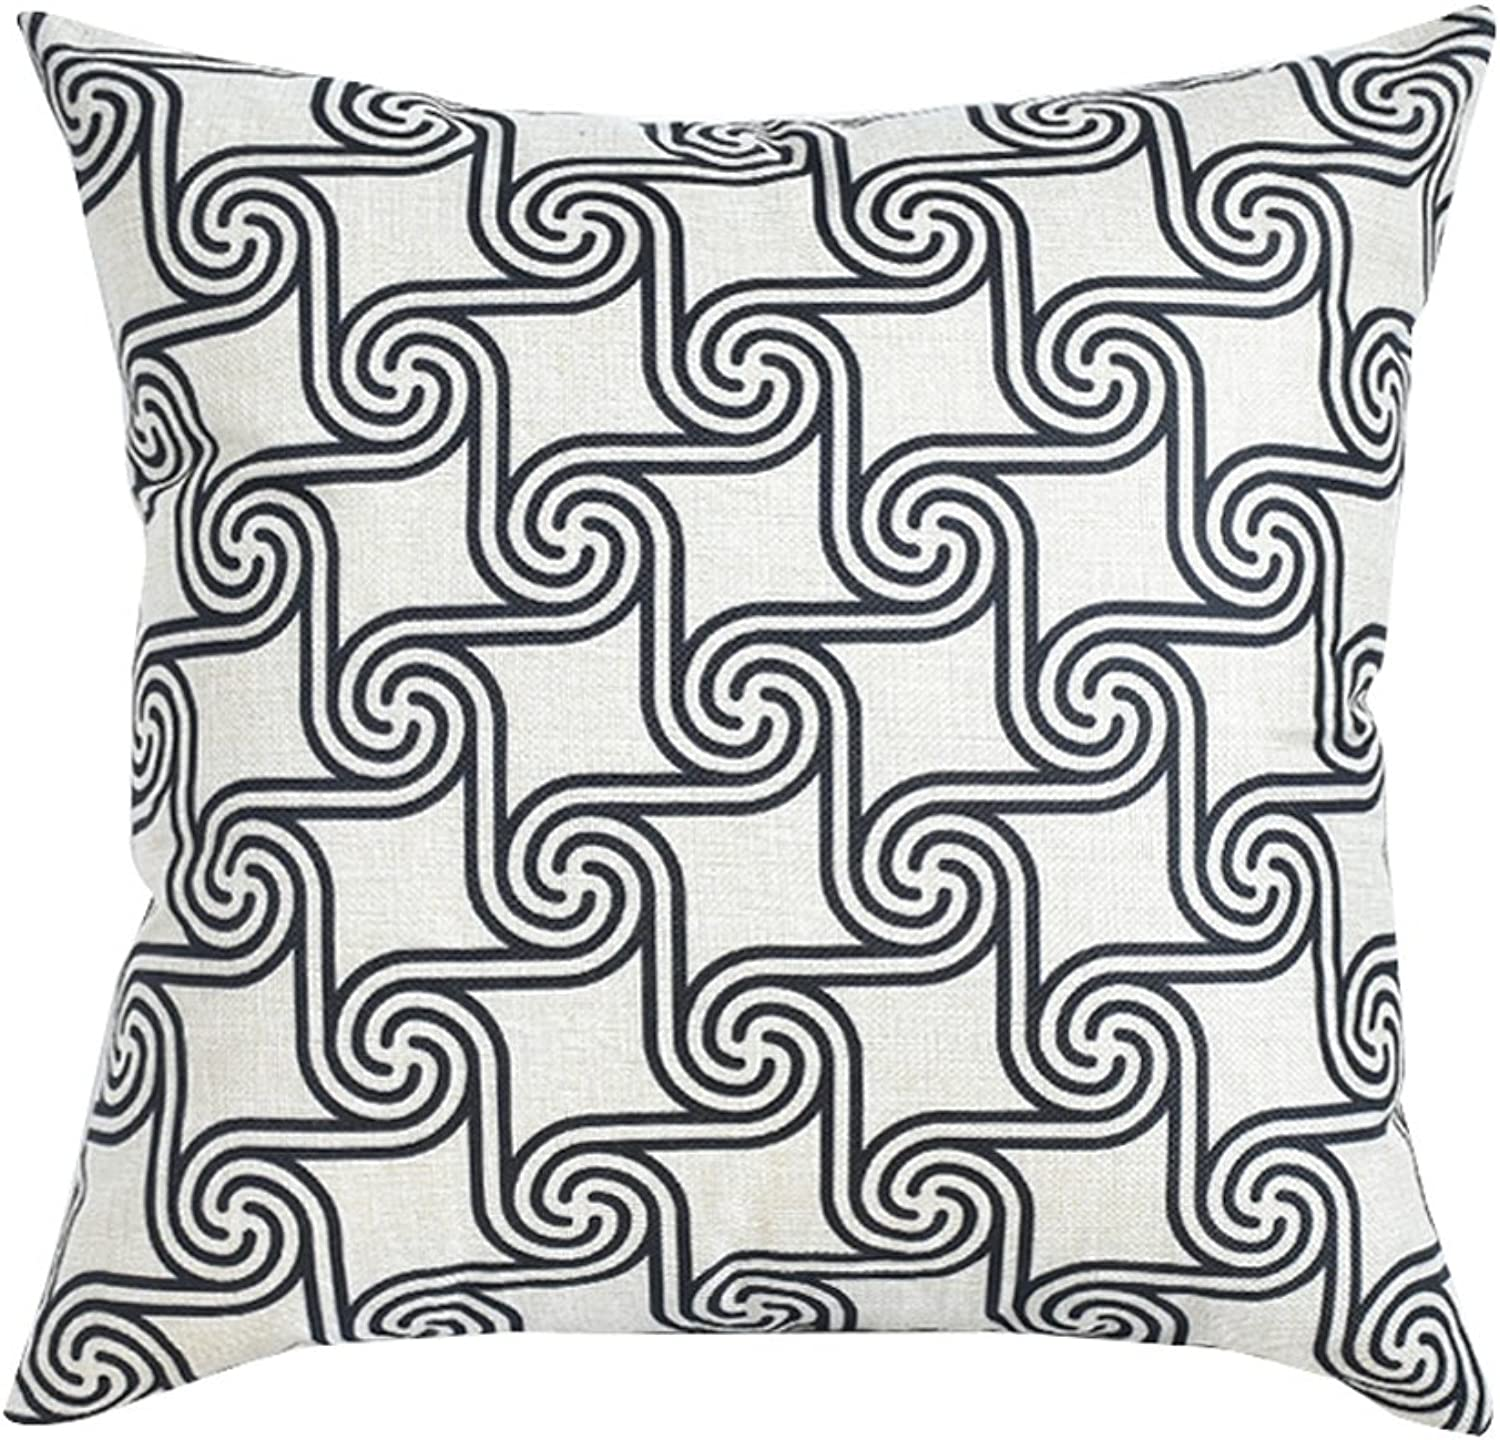 Square Pillow Cartoon Printing Living Room Bedroom Study Office Sofa Pillow Household Cushion Cover Chair Waist Cotton and Linen Washable(45cm45cm) Decorative Pillow (color   B, Size   45CM45CM)